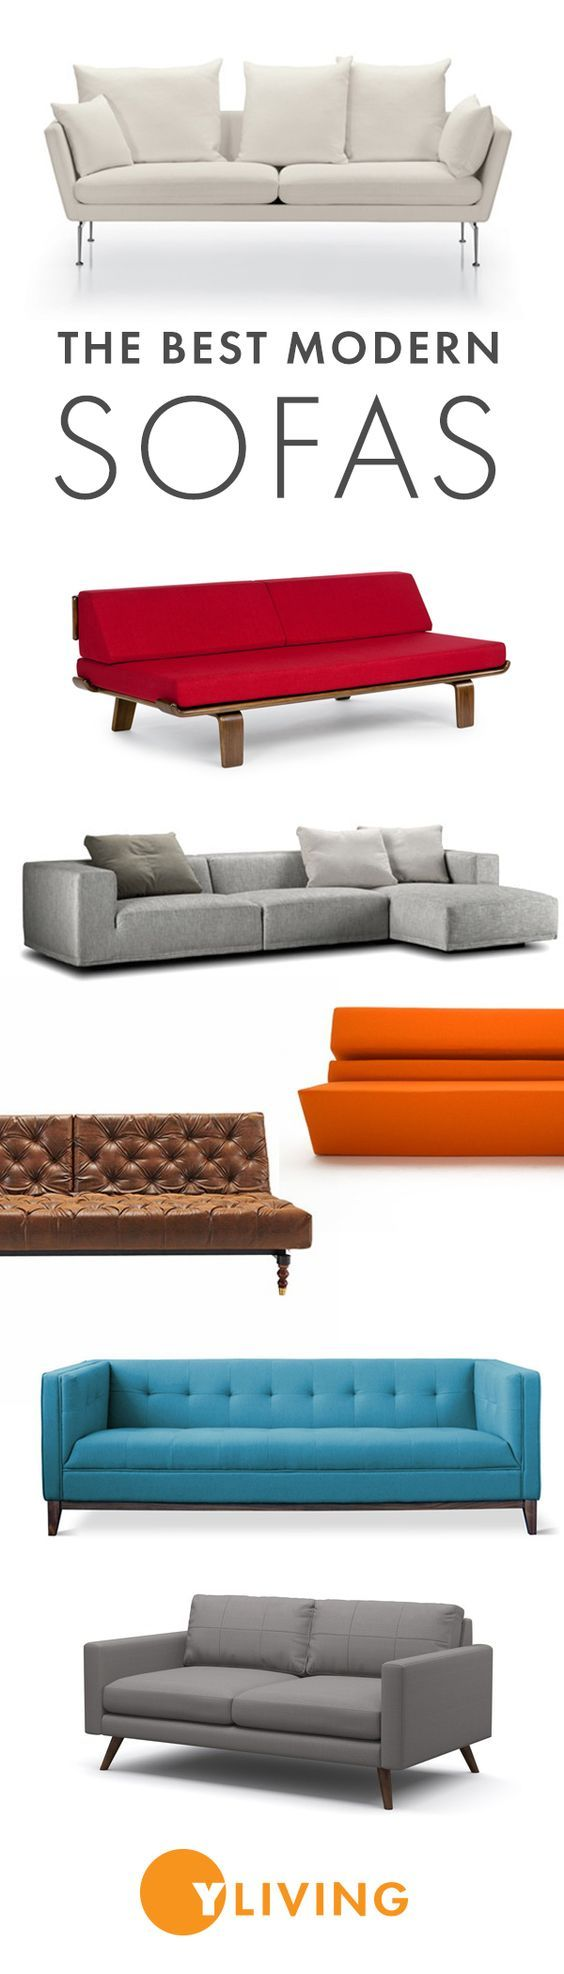 Set the style of your space and take your pick from our premium collection of classic and contemporary pieces from standard sofas, sectionals, loveseats, and daybeds. http://www.yliving.com/category/Furniture/Sofas/_/N-16zbj